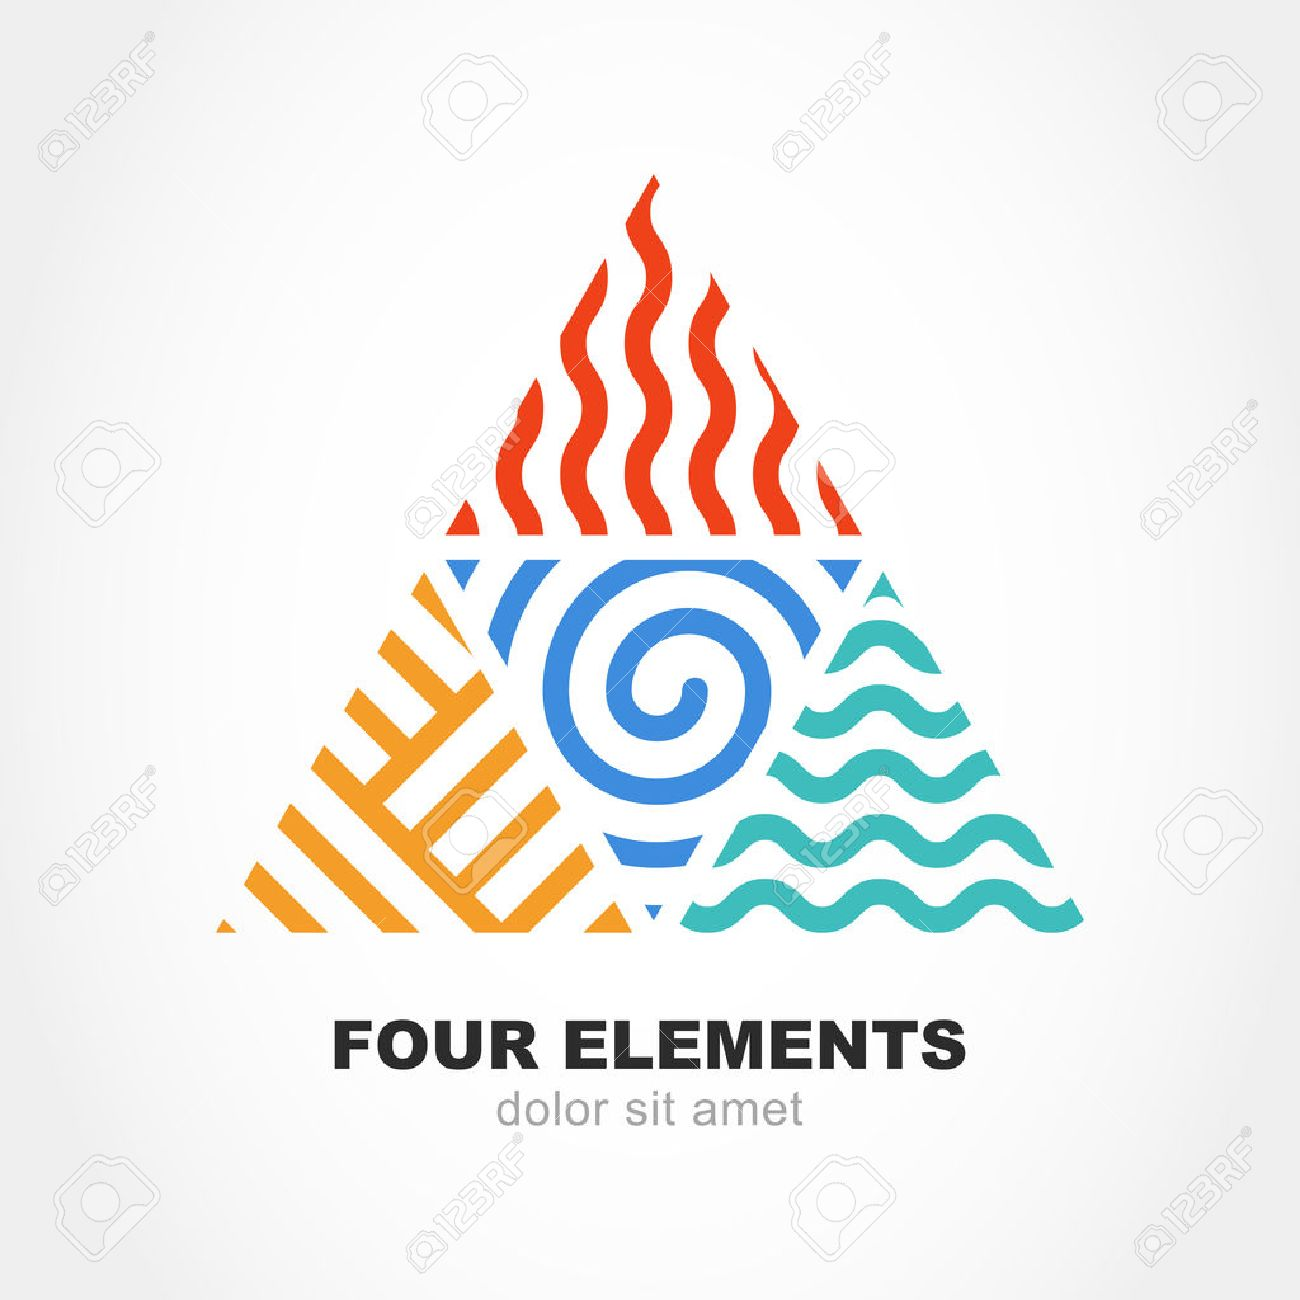 four elements simple line symbol in pyramid shape vector logo